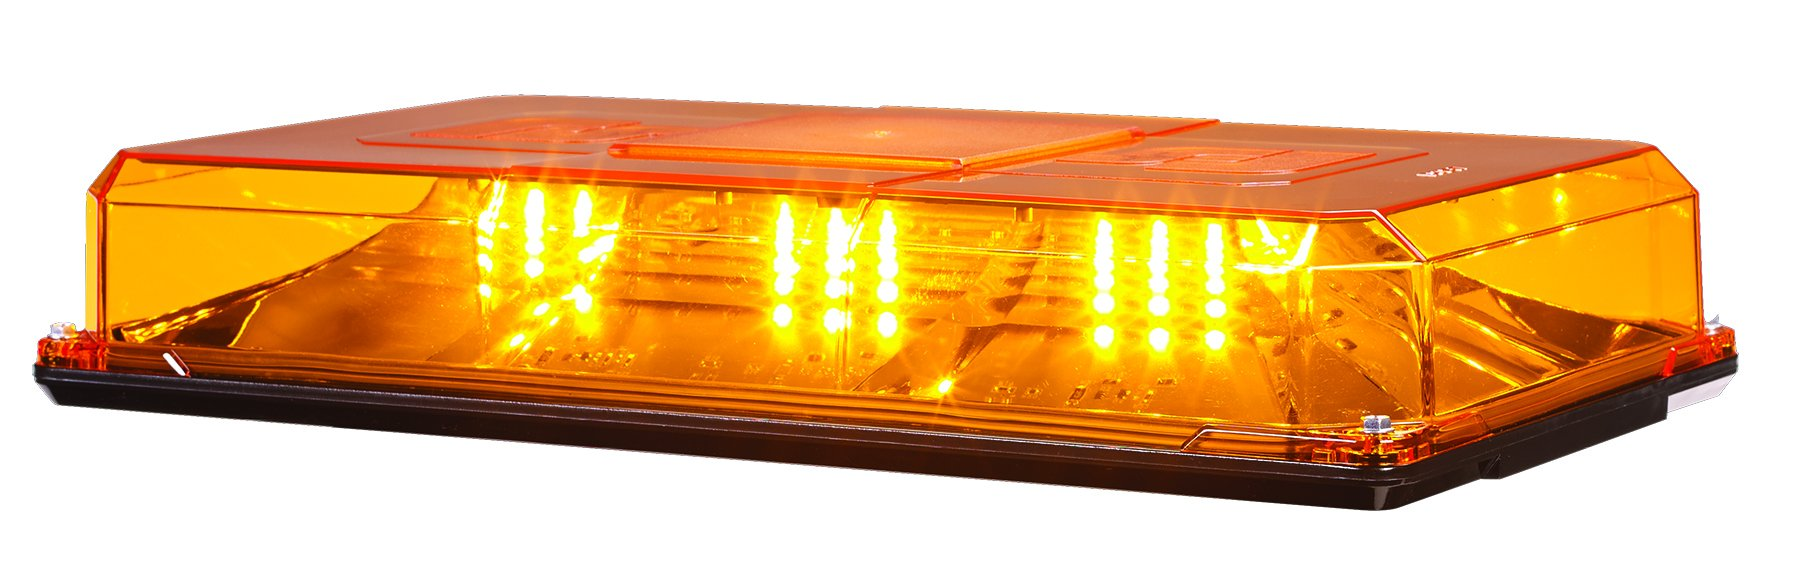 Federal Signal 454102HL-02 HighLighter LED Mini-Lightbar with Magnetic Mount, Amber  Dome/LEDs by Federal Signal (Image #1)